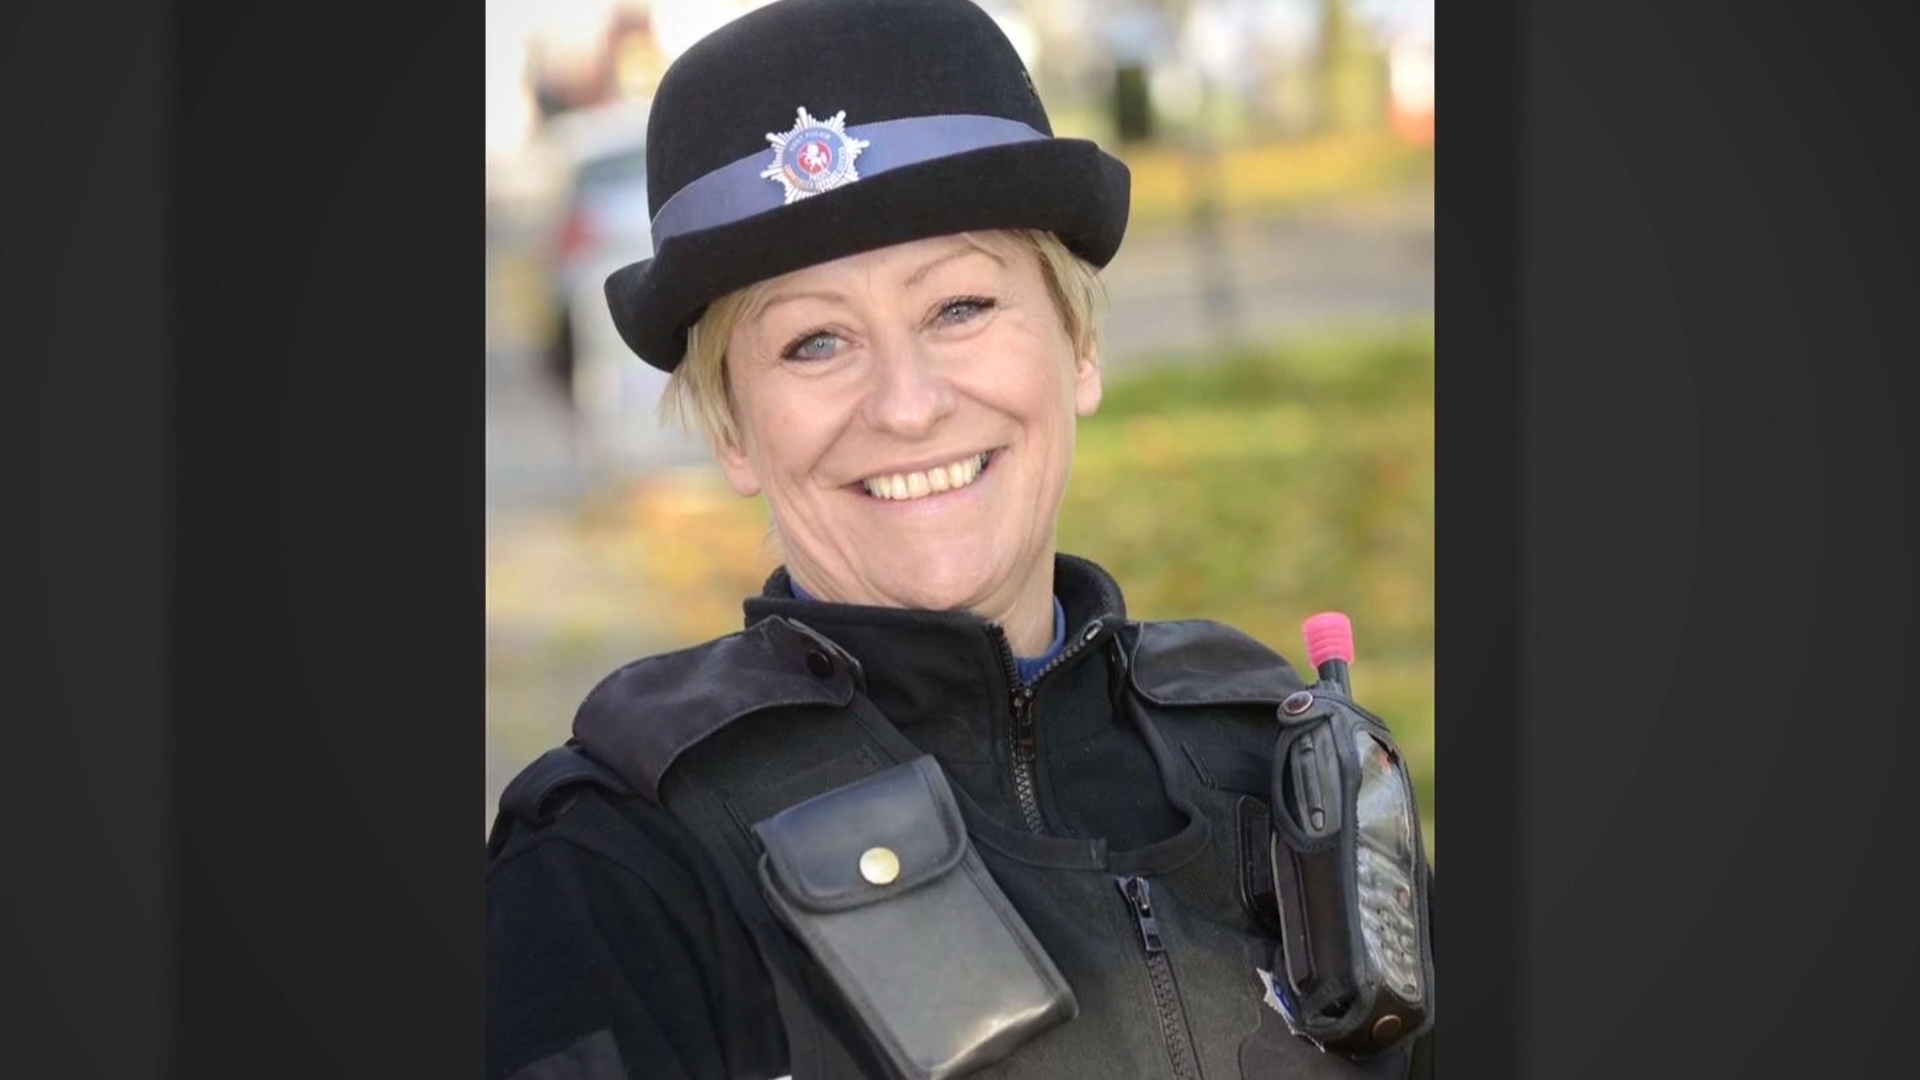 Julia James: £10,000 reward offered for help in solving death of PCSO - channel 4